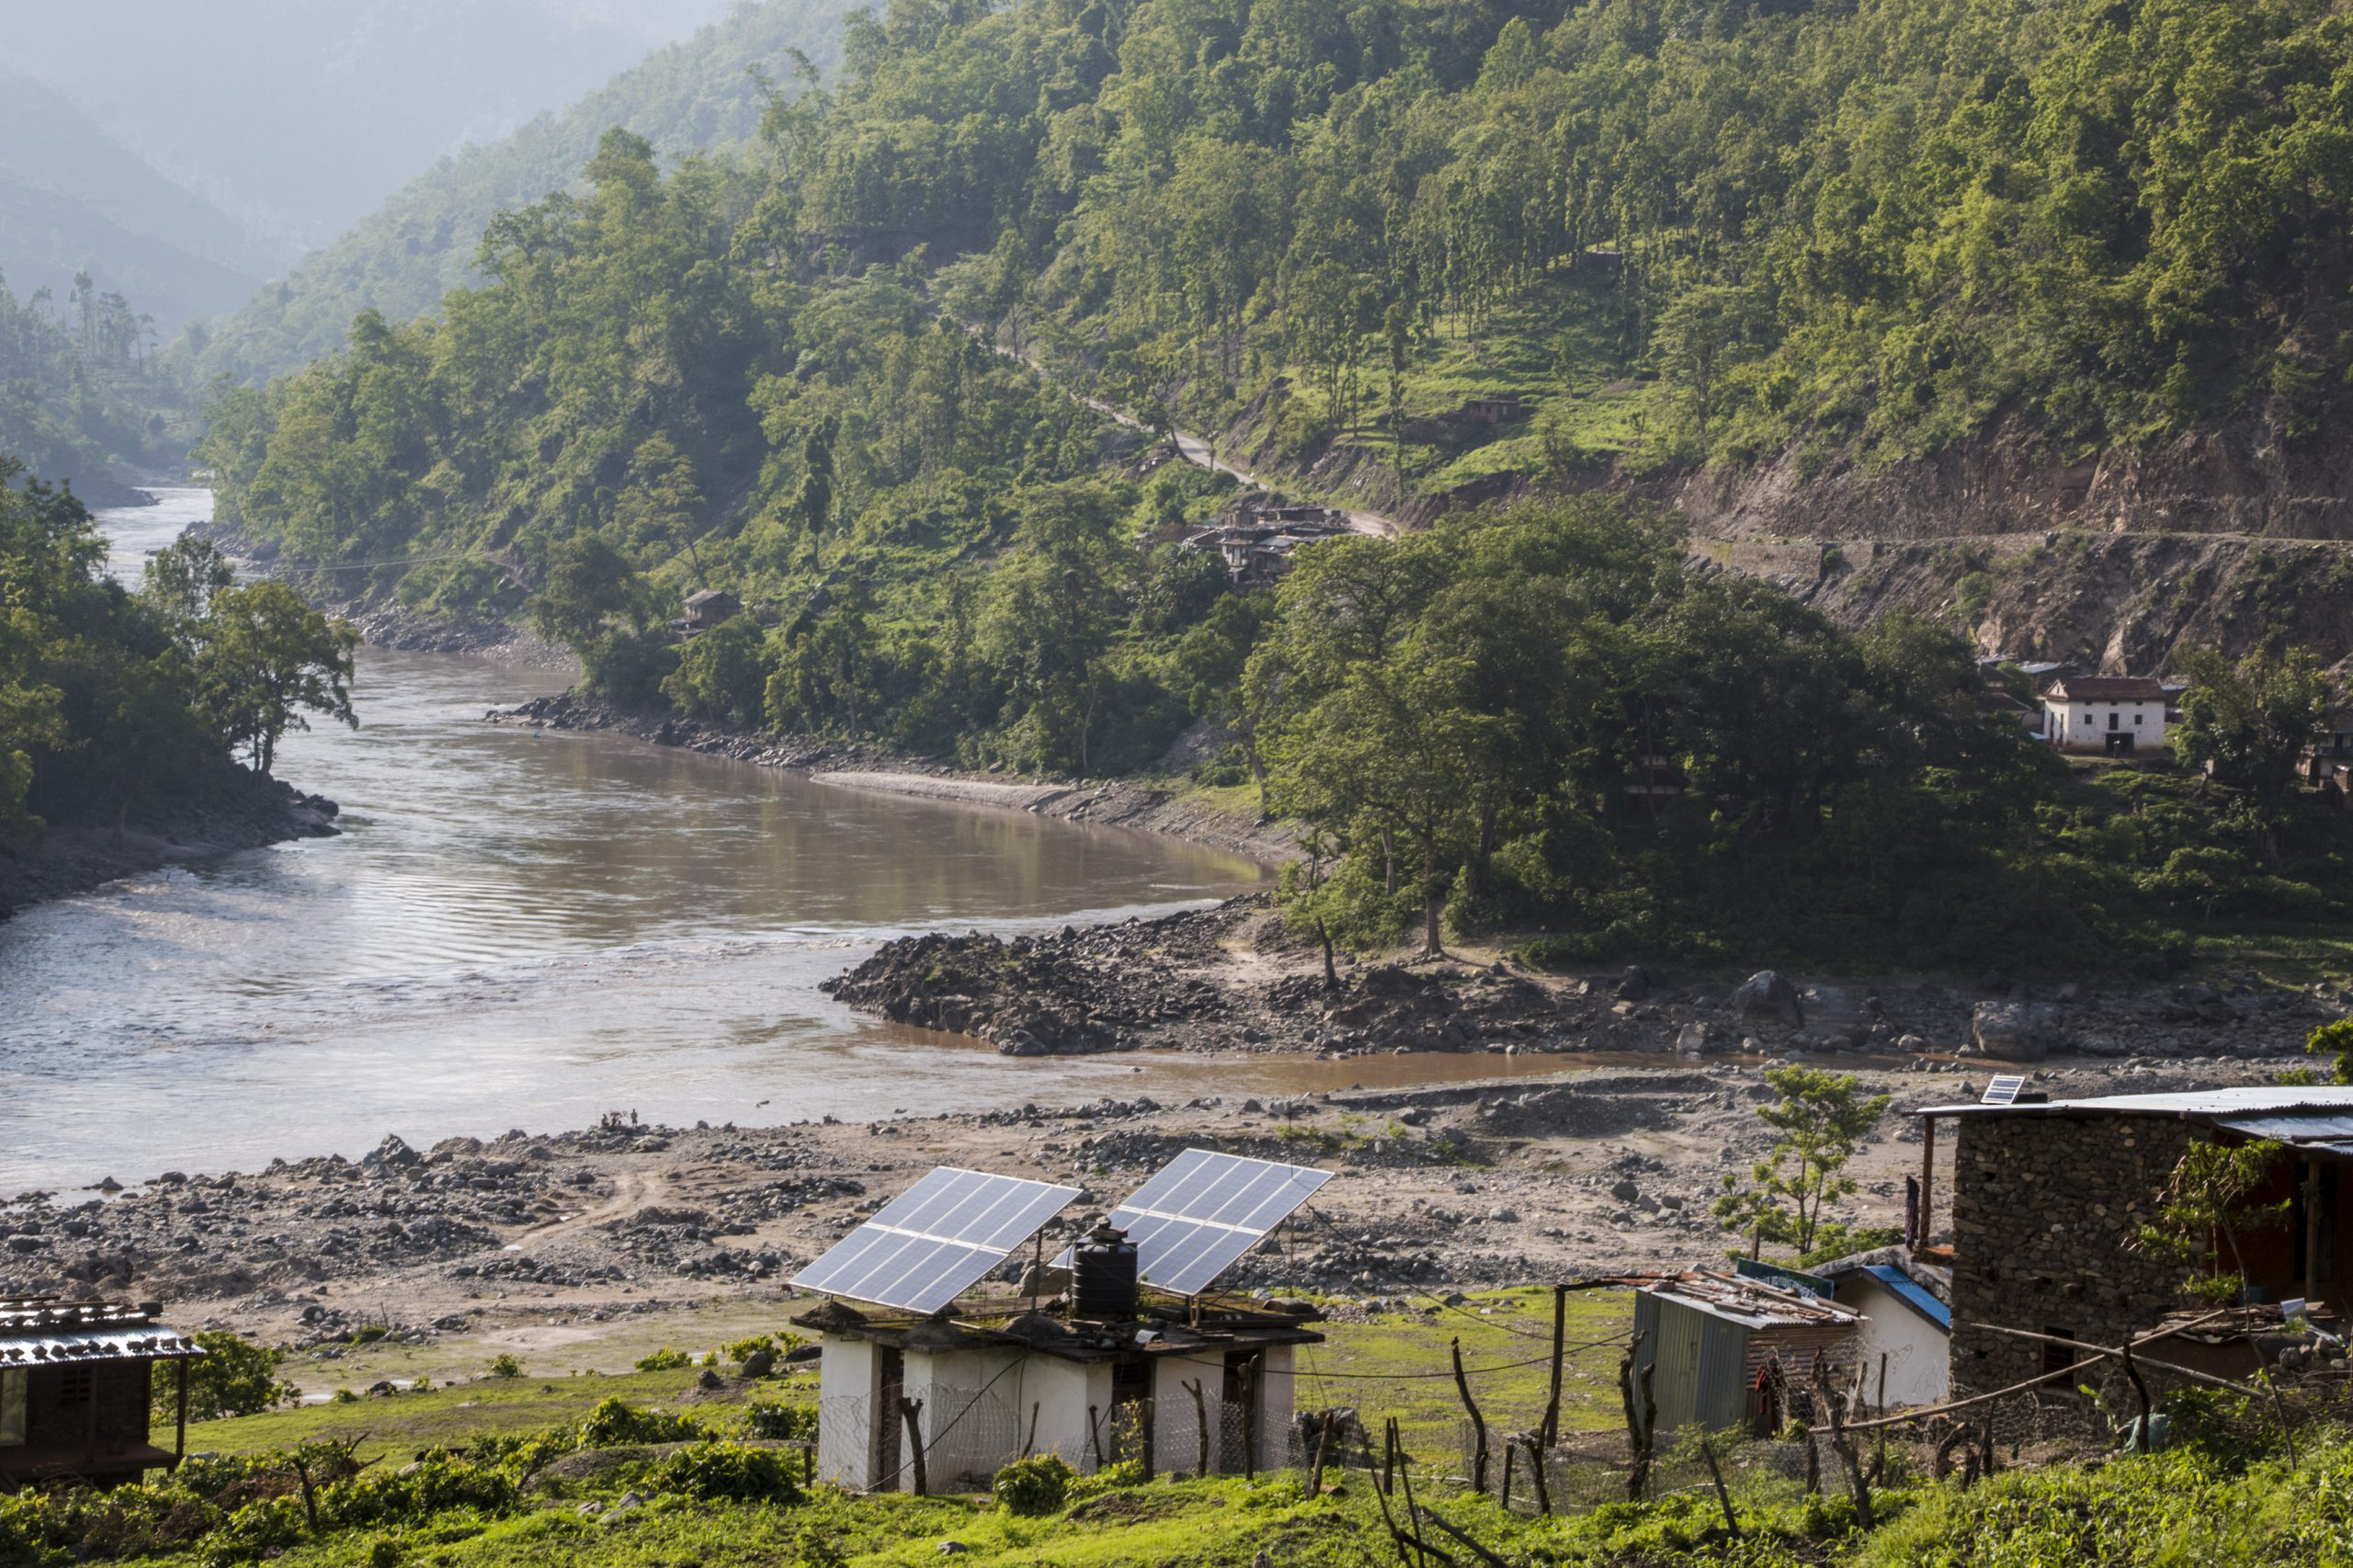 Inclusive, sustainable management of water resources in Nepal depends on addressing climate change and protecting healthy, biodiverse ecosystems